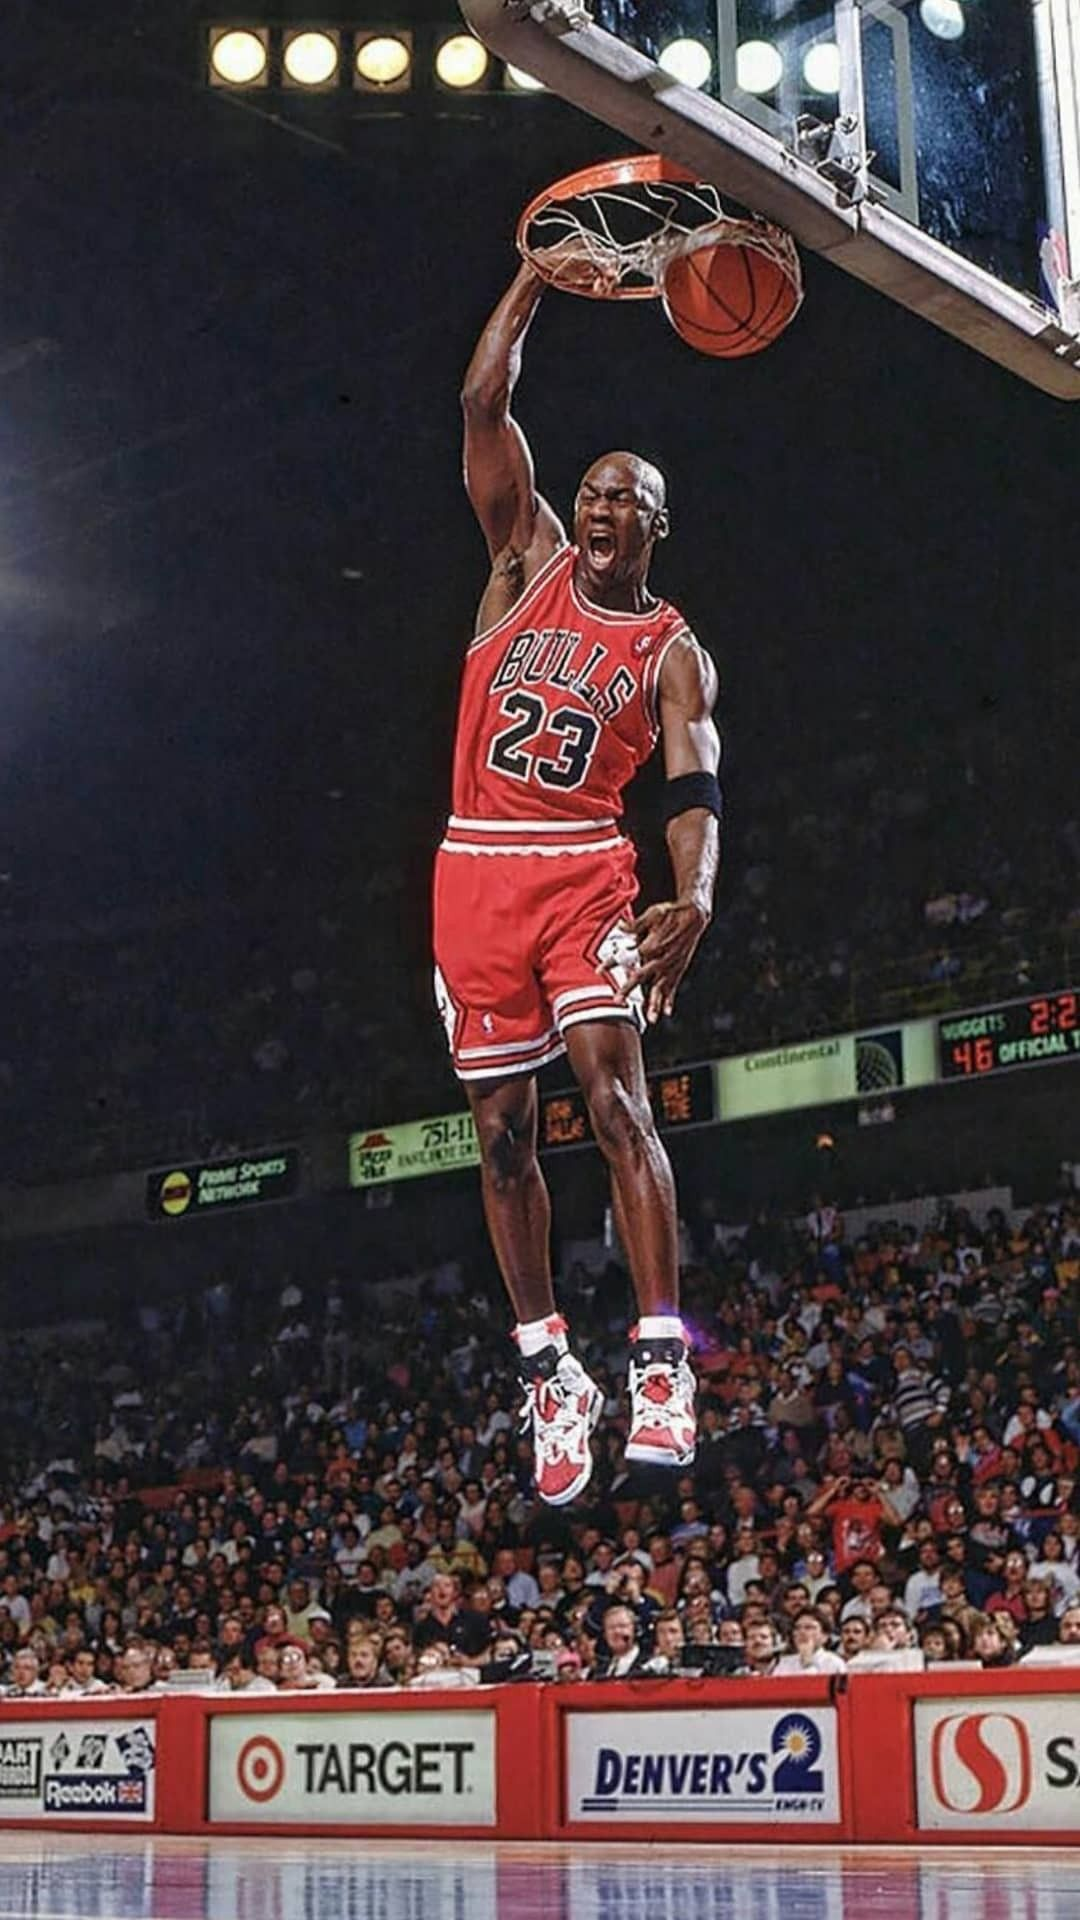 33c36f190a8 Michael Jordan | His Airness | Basketball, Jordan basketball, Sports ...